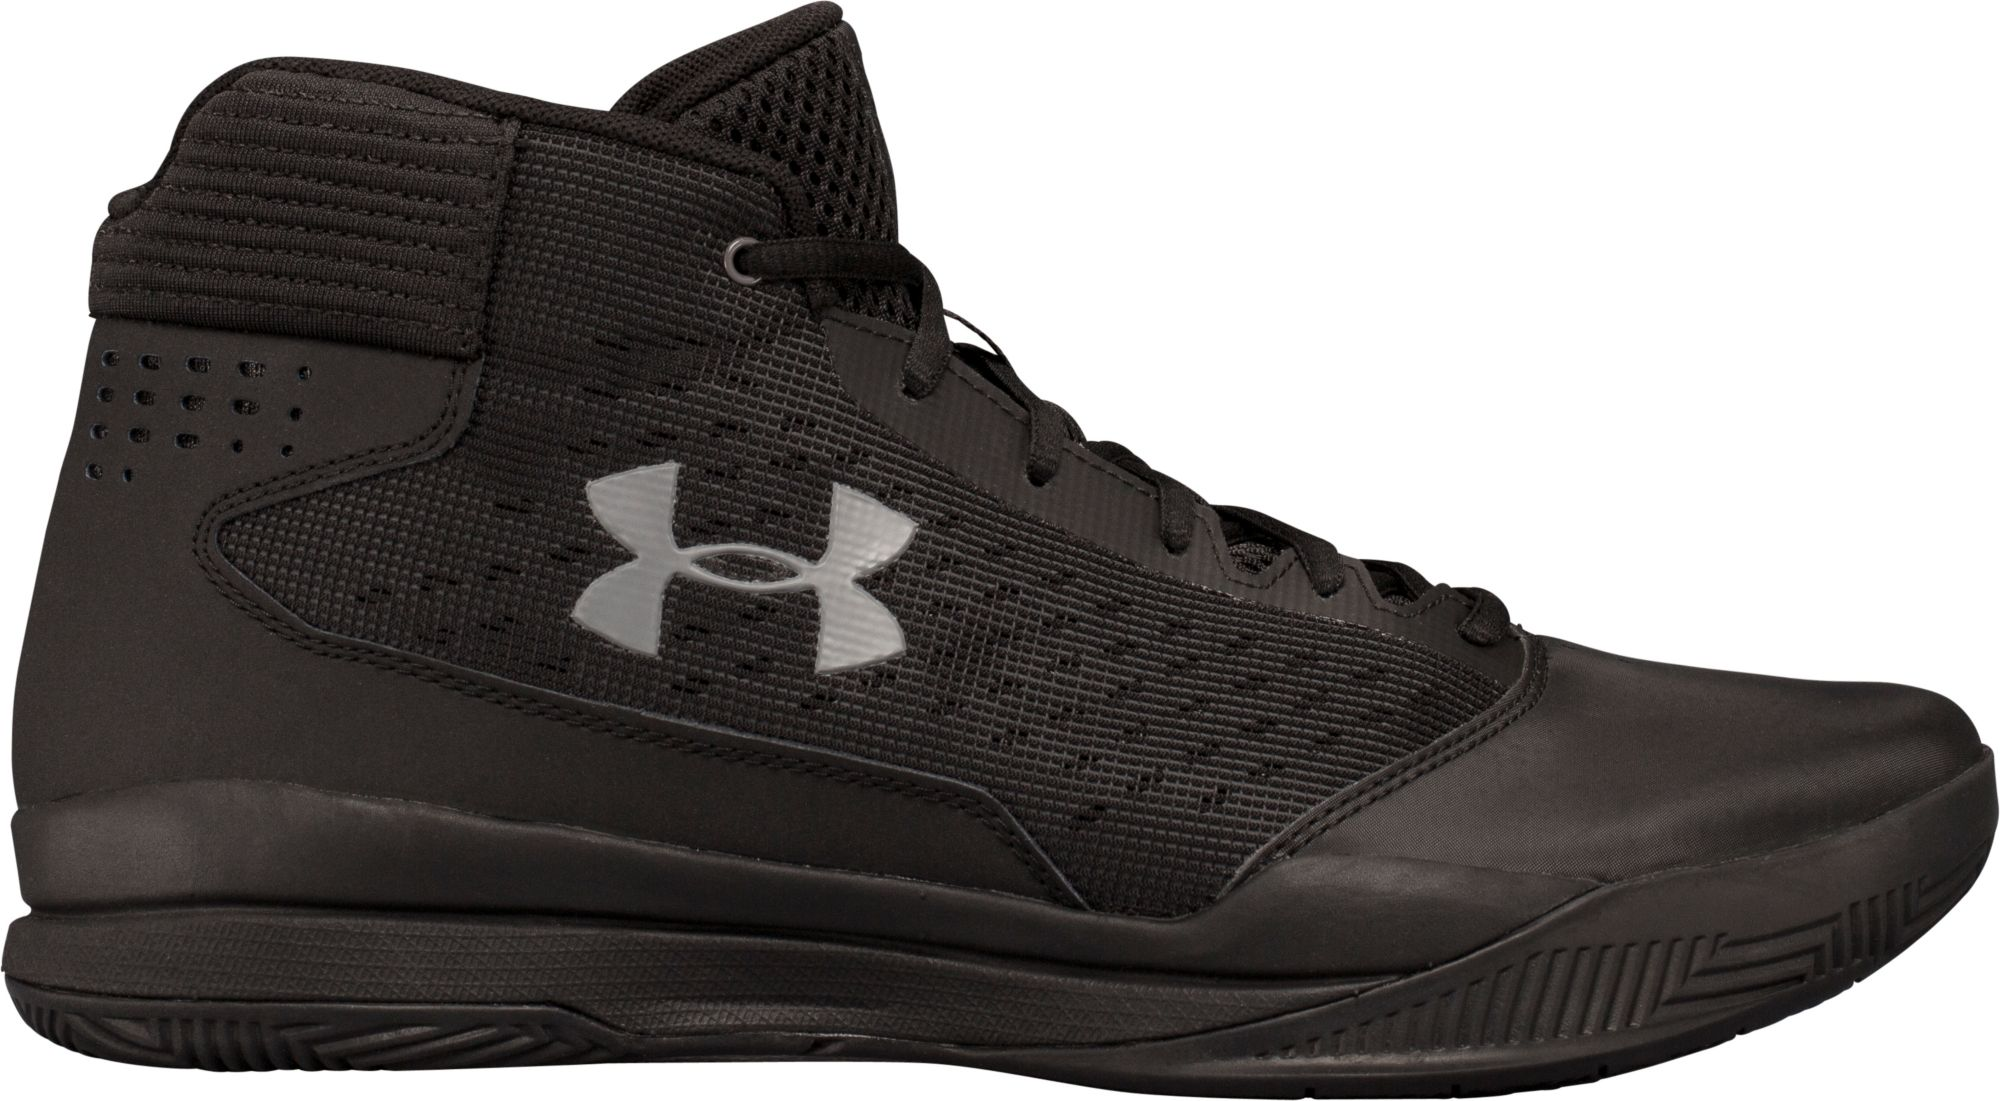 Under Armour Mens Scarpe Da Basket In Vendita c7snI7CFk